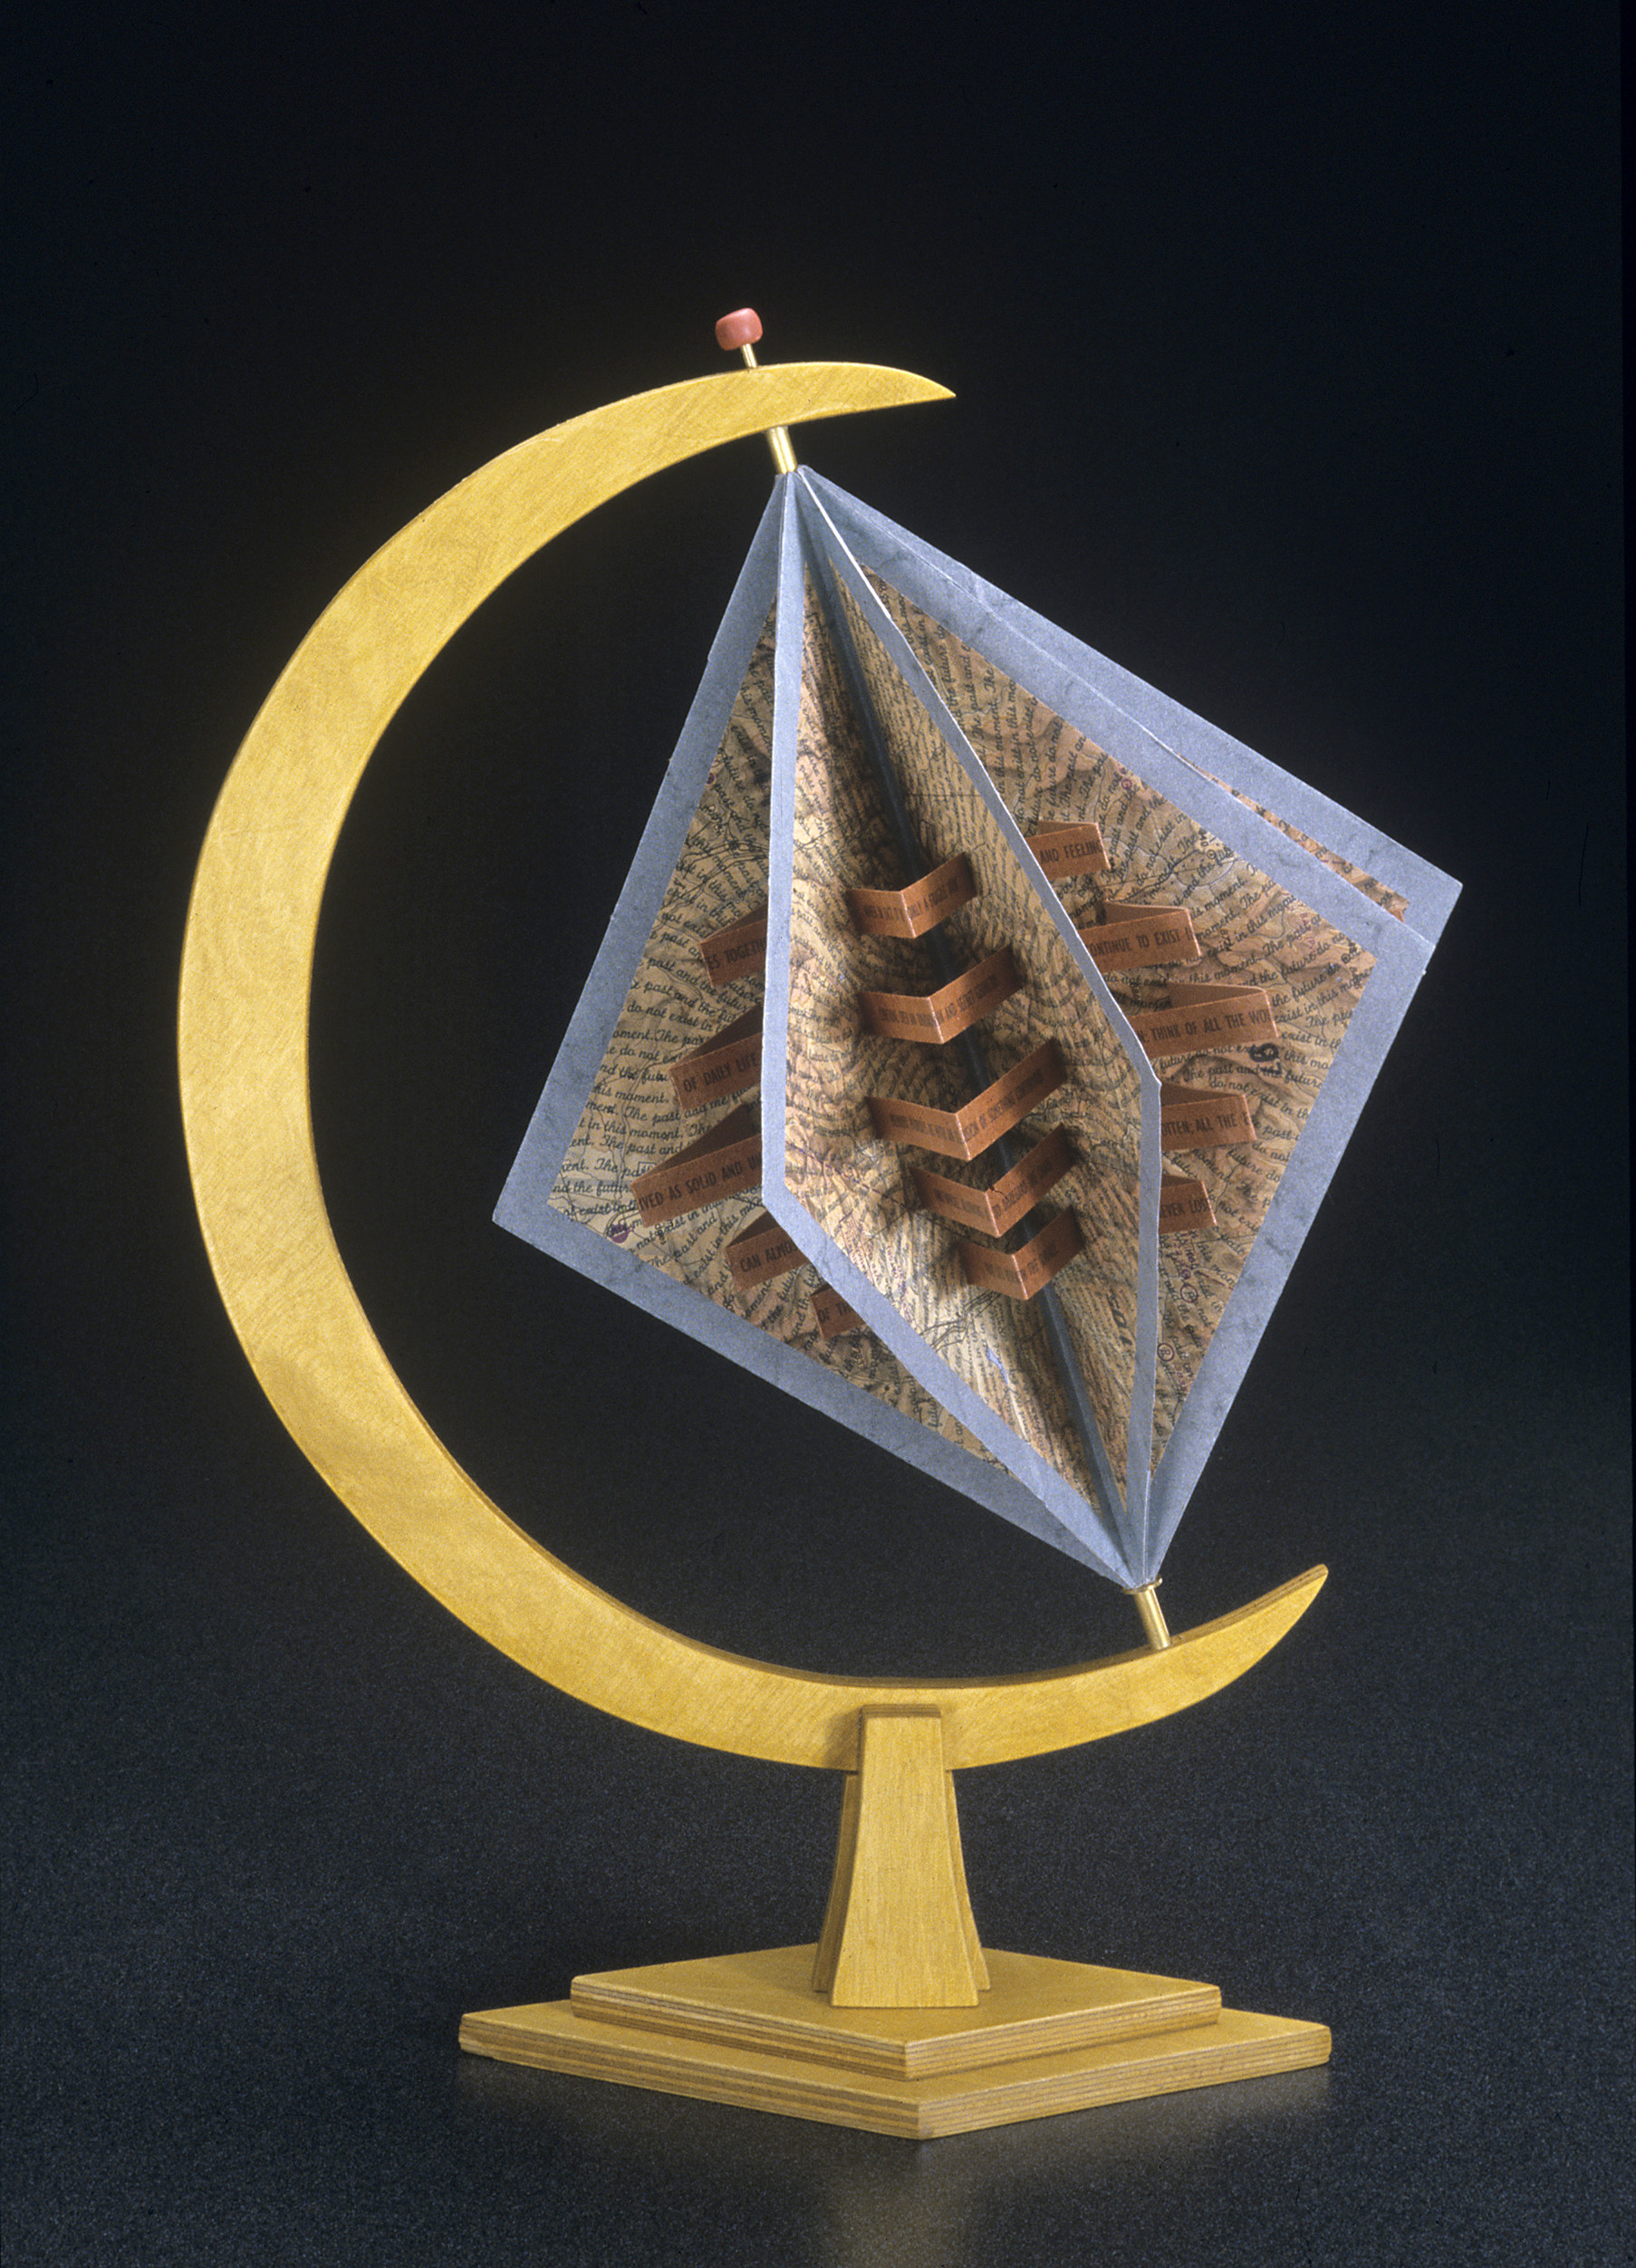 An open artist's book that is diamond shaped with open carousel-style pages covered in lines of text radiating out from the core. The book is perched in a half-moon holder on a stand, like a globe.